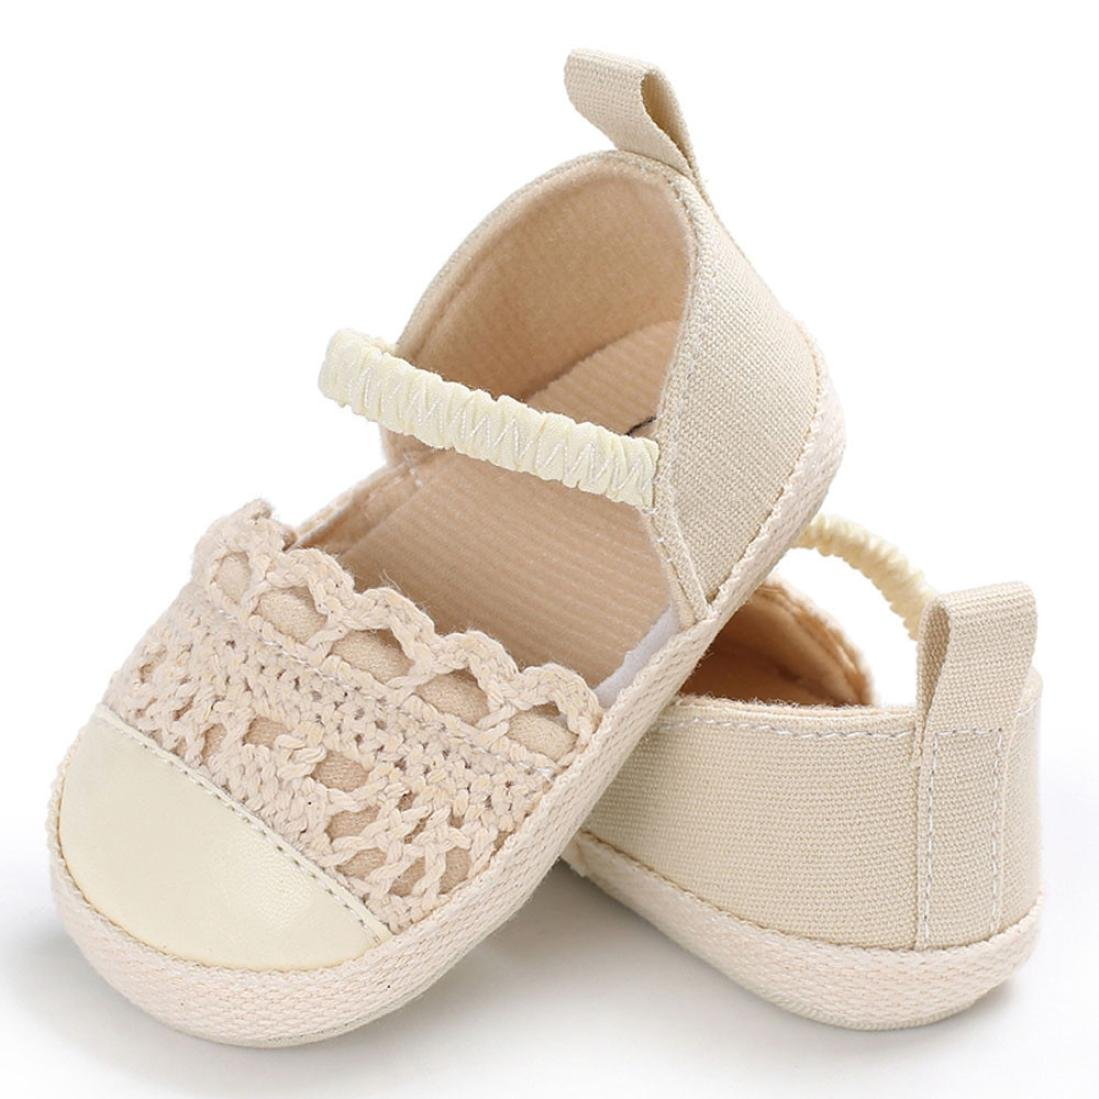 Voberry Baby Girl Handmade Knit Cloth Soft Sole Prewalker Shoes Sandals